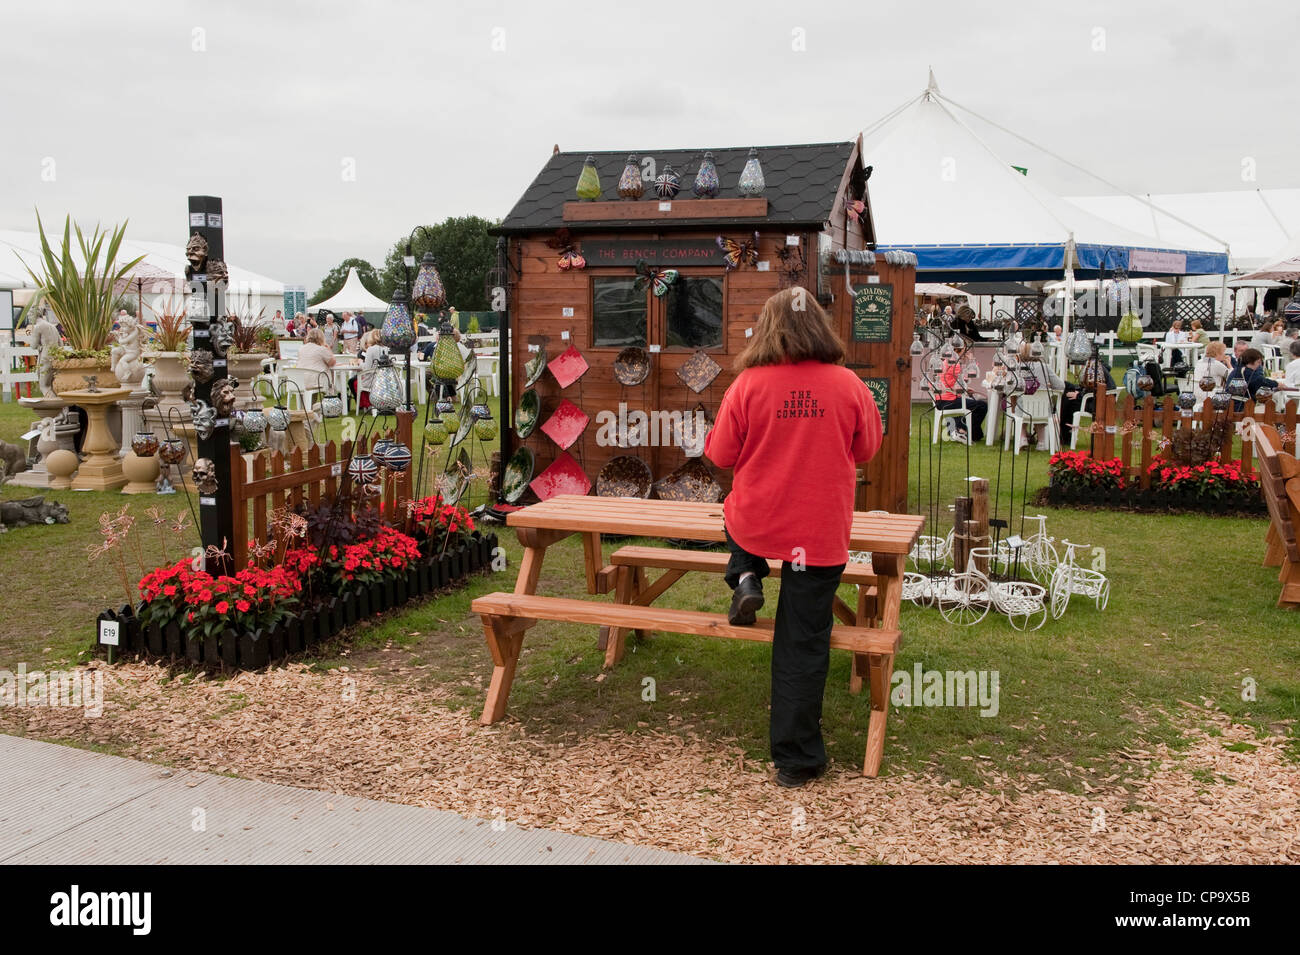 Garden Furniture Cheshire Rhs flower show tatton park cheshire a trade stand promoting rhs flower show tatton park cheshire a trade stand promoting garden furniture and ornaments workwithnaturefo